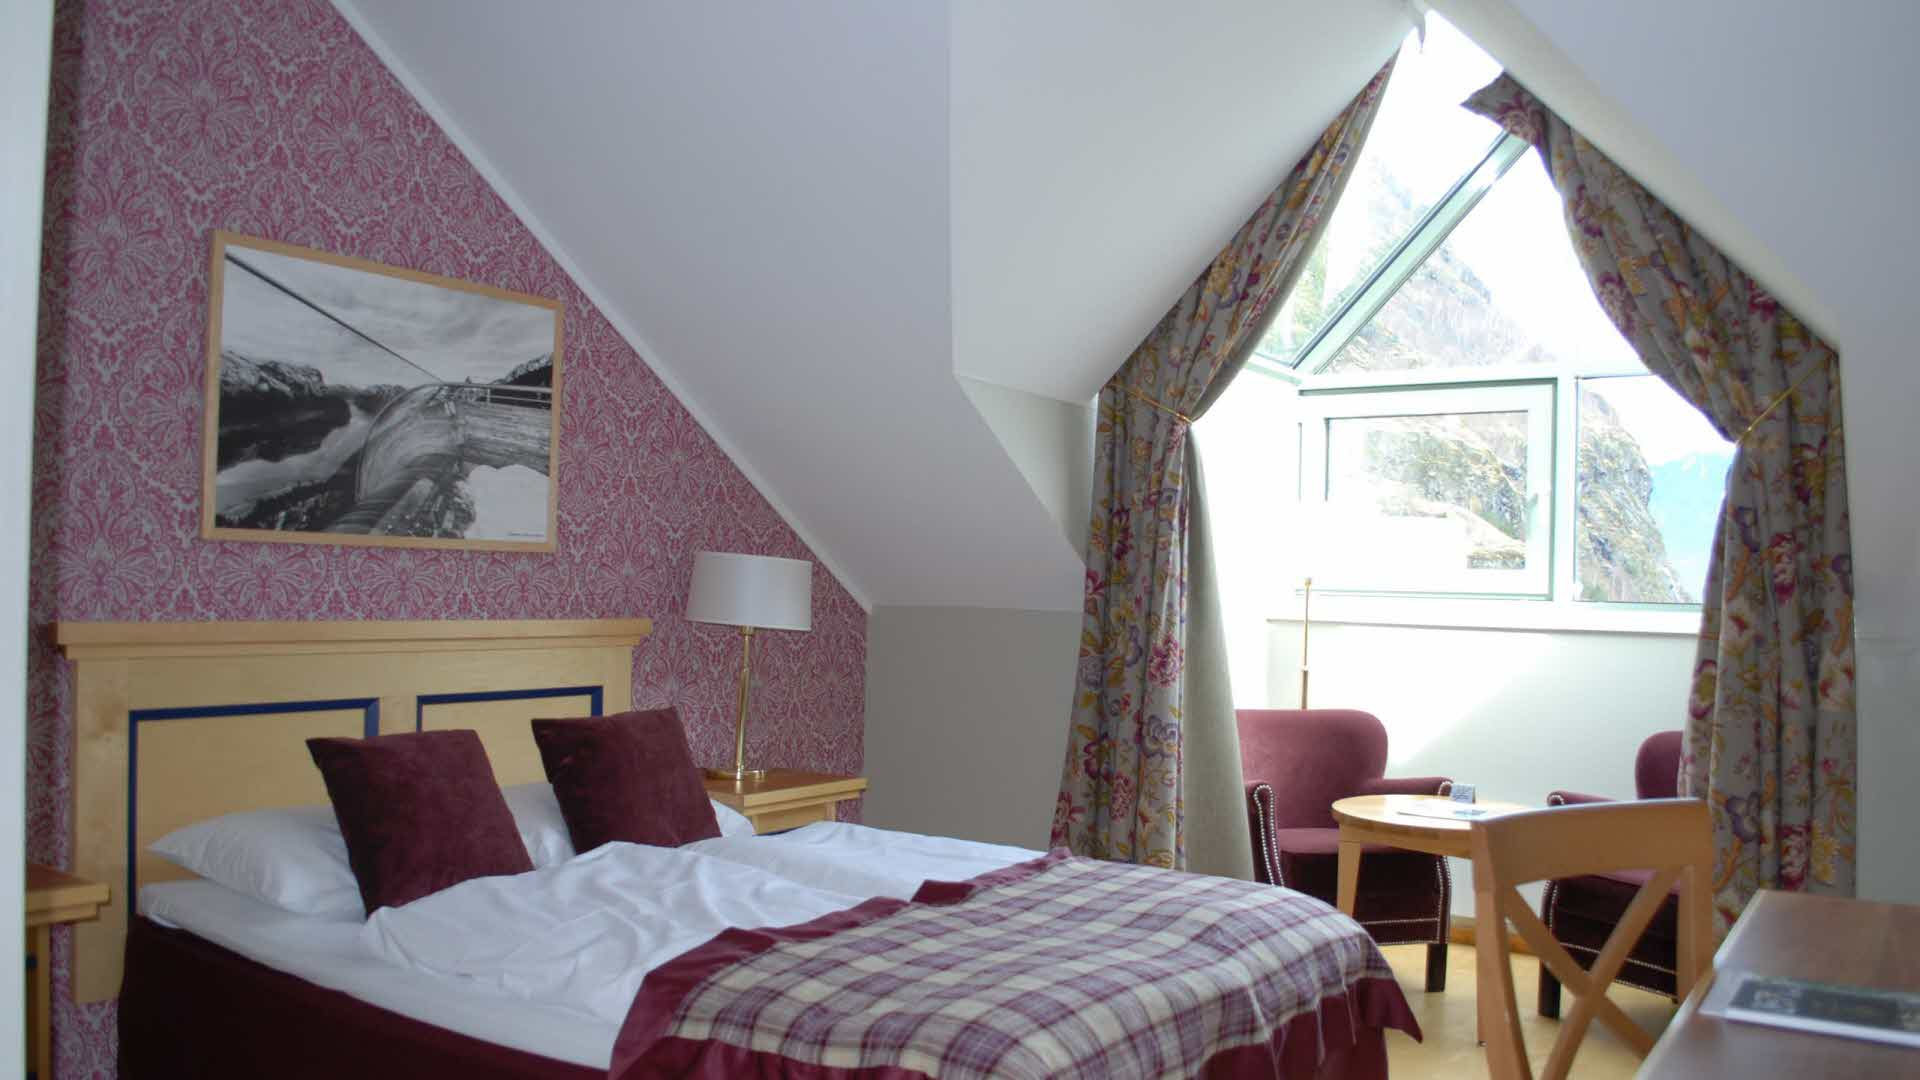 Single room at Fretheim Hotel made up for two people, with queen size bed in front and seating area in bay window in the back.